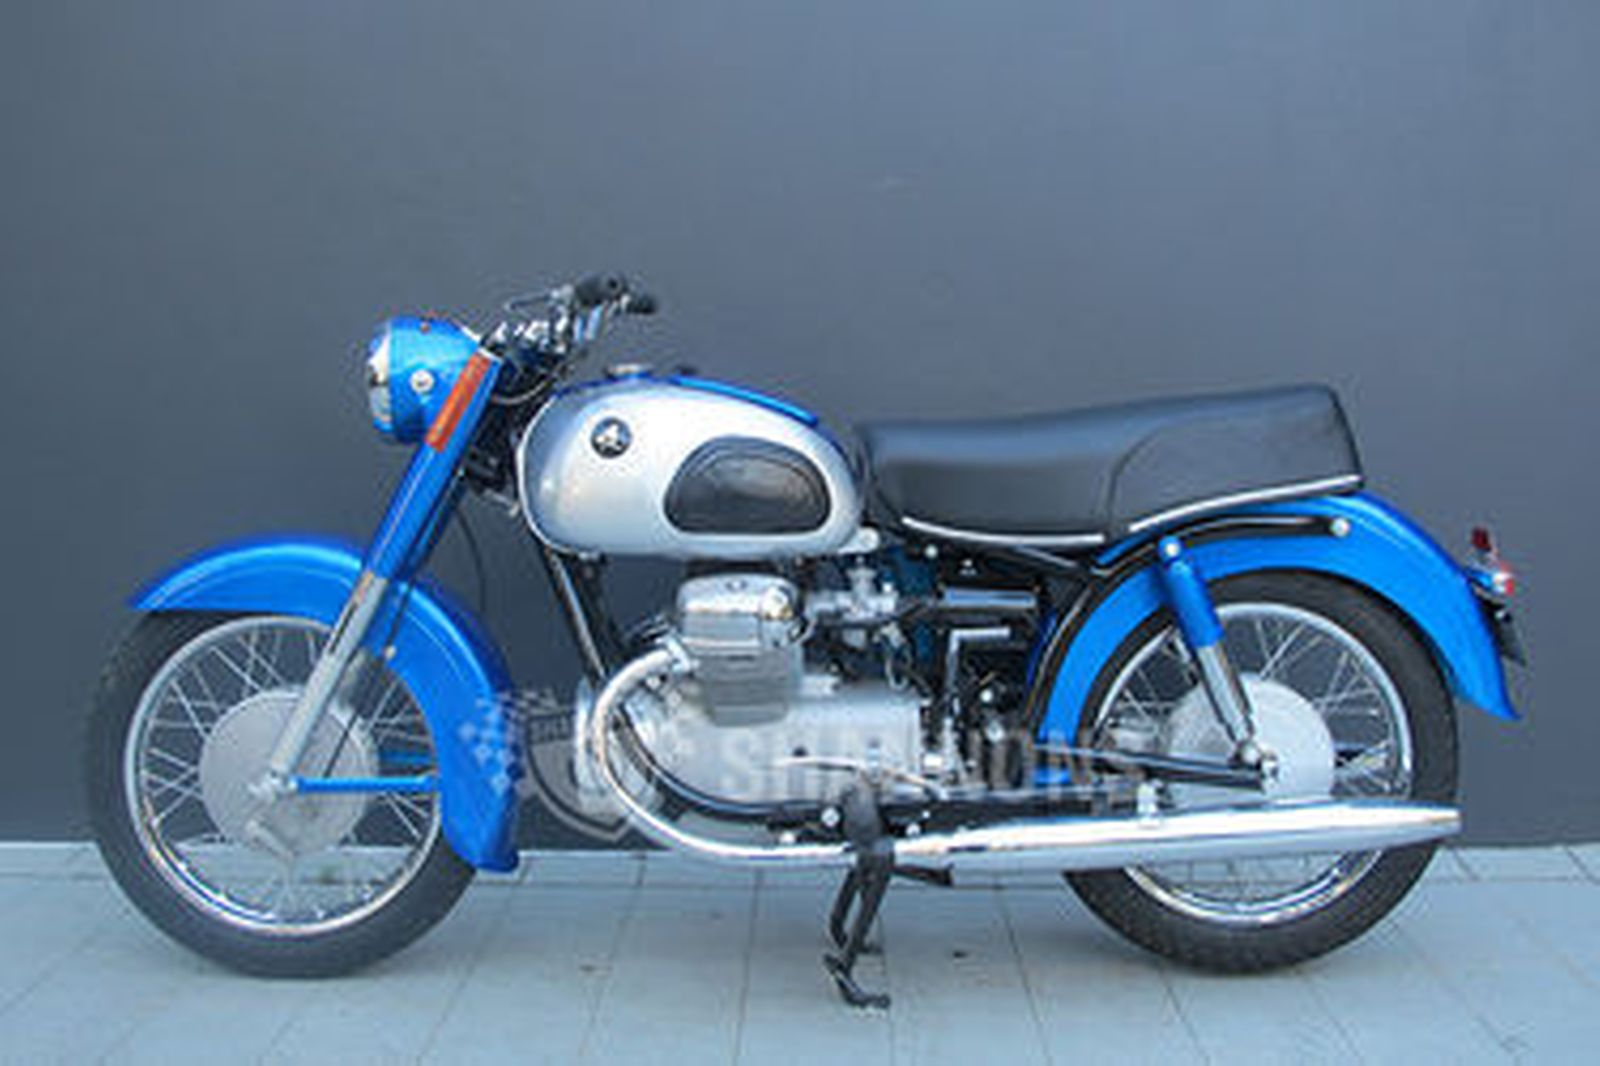 Sold: Marusho Lilac 250cc Motorcycle Auctions